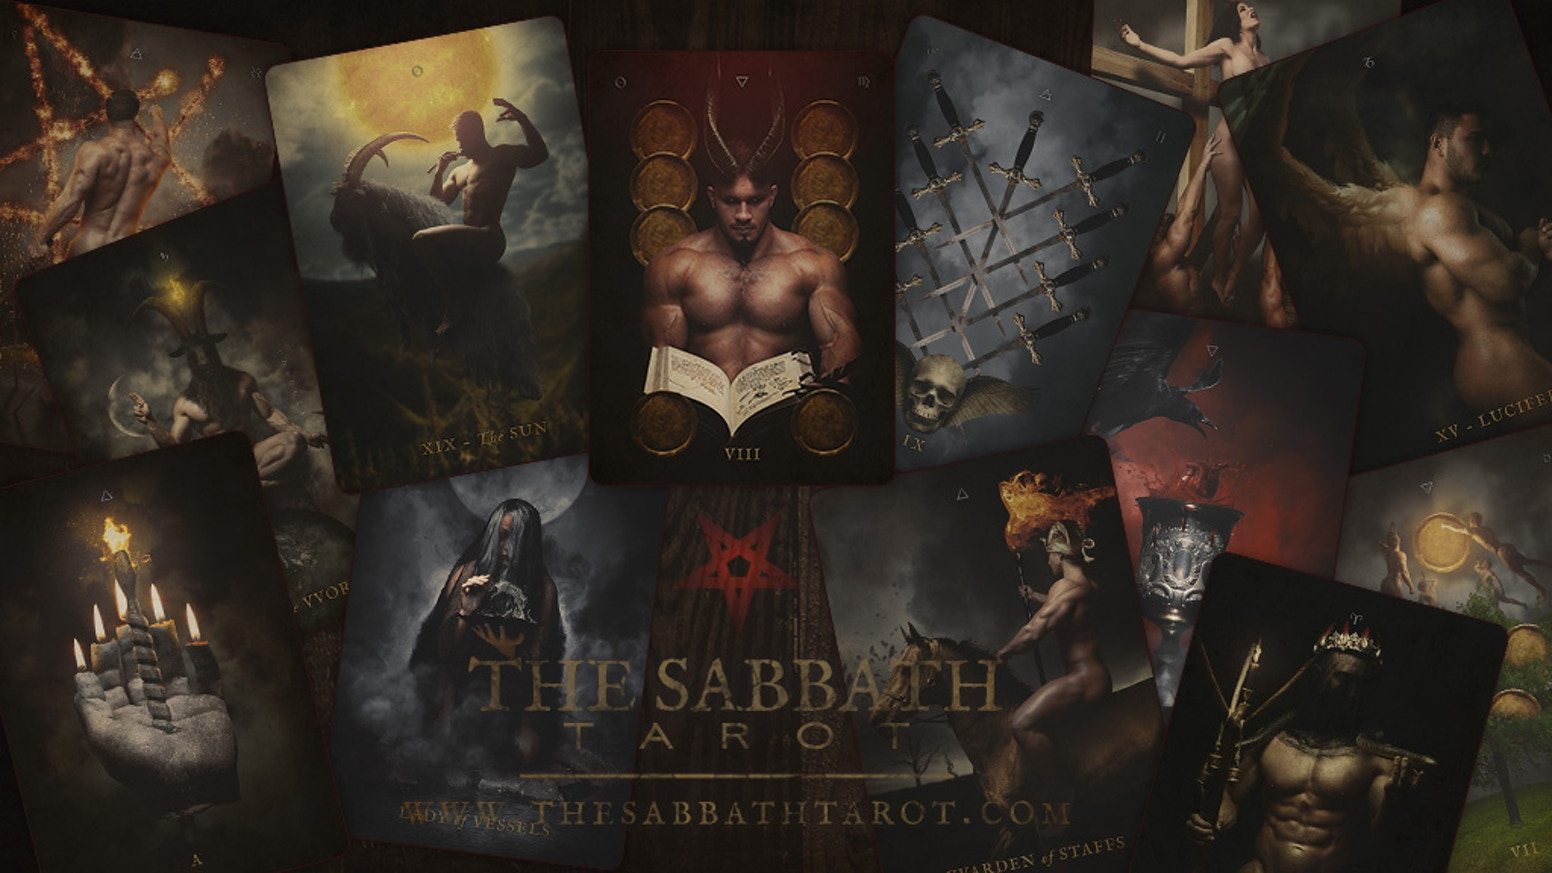 This deck captures familiar scenes from The Witch's Sabbath as well as other sights familiar to witches and their rites.